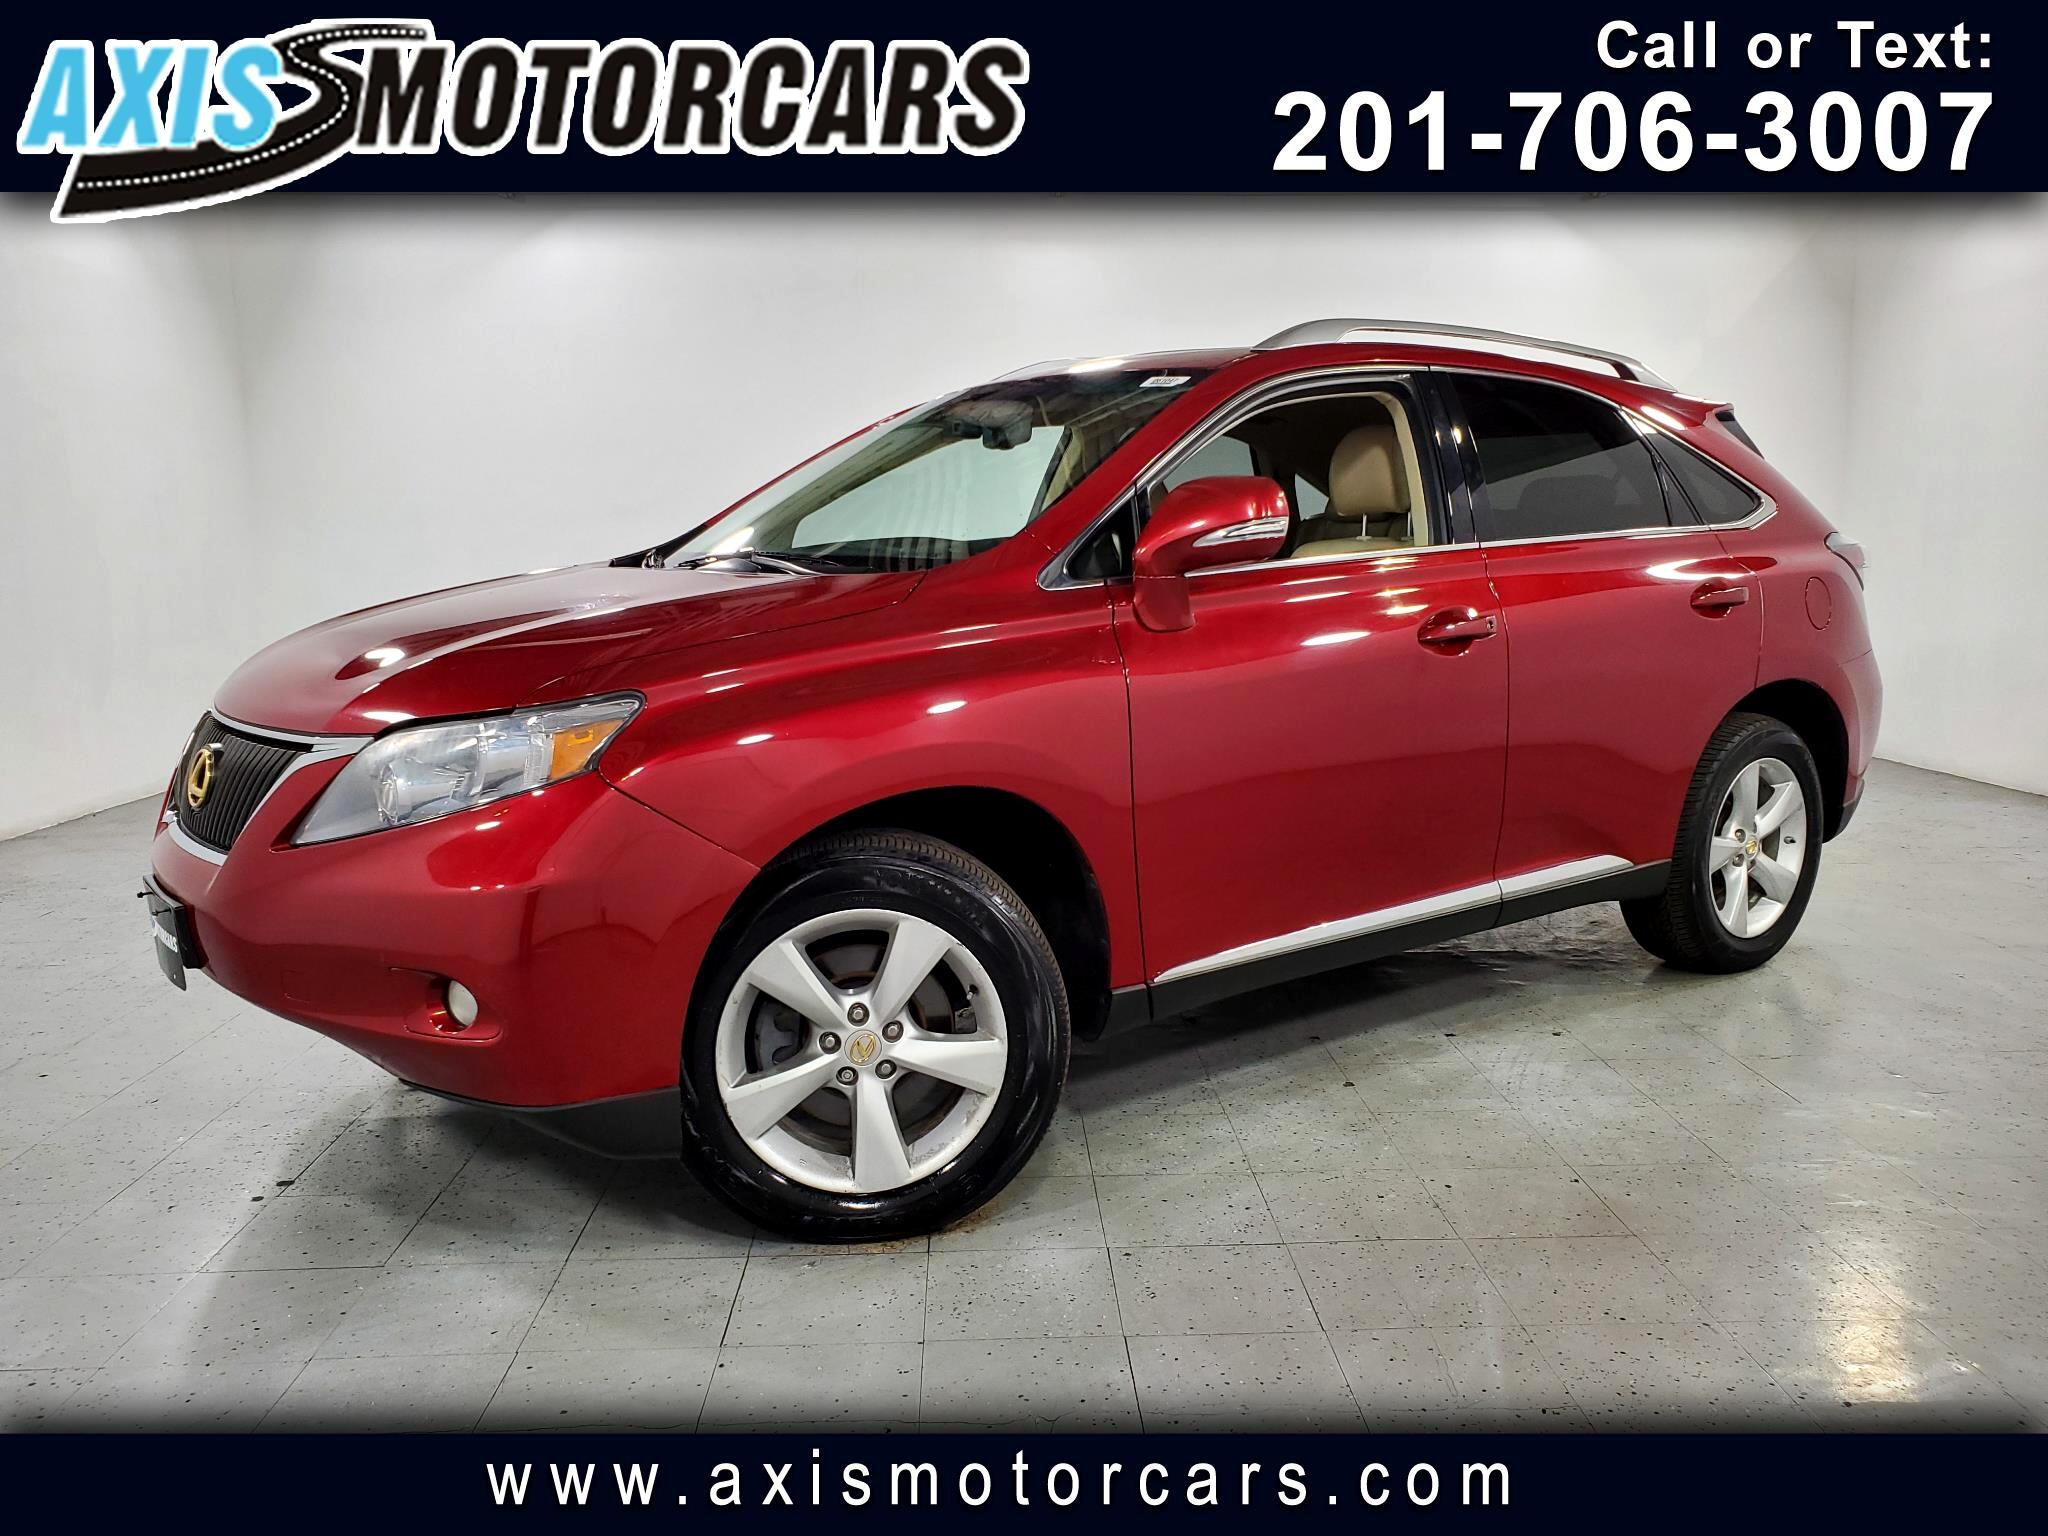 2010 Lexus RX 350 w/Navigation Backup Camera Sunroof